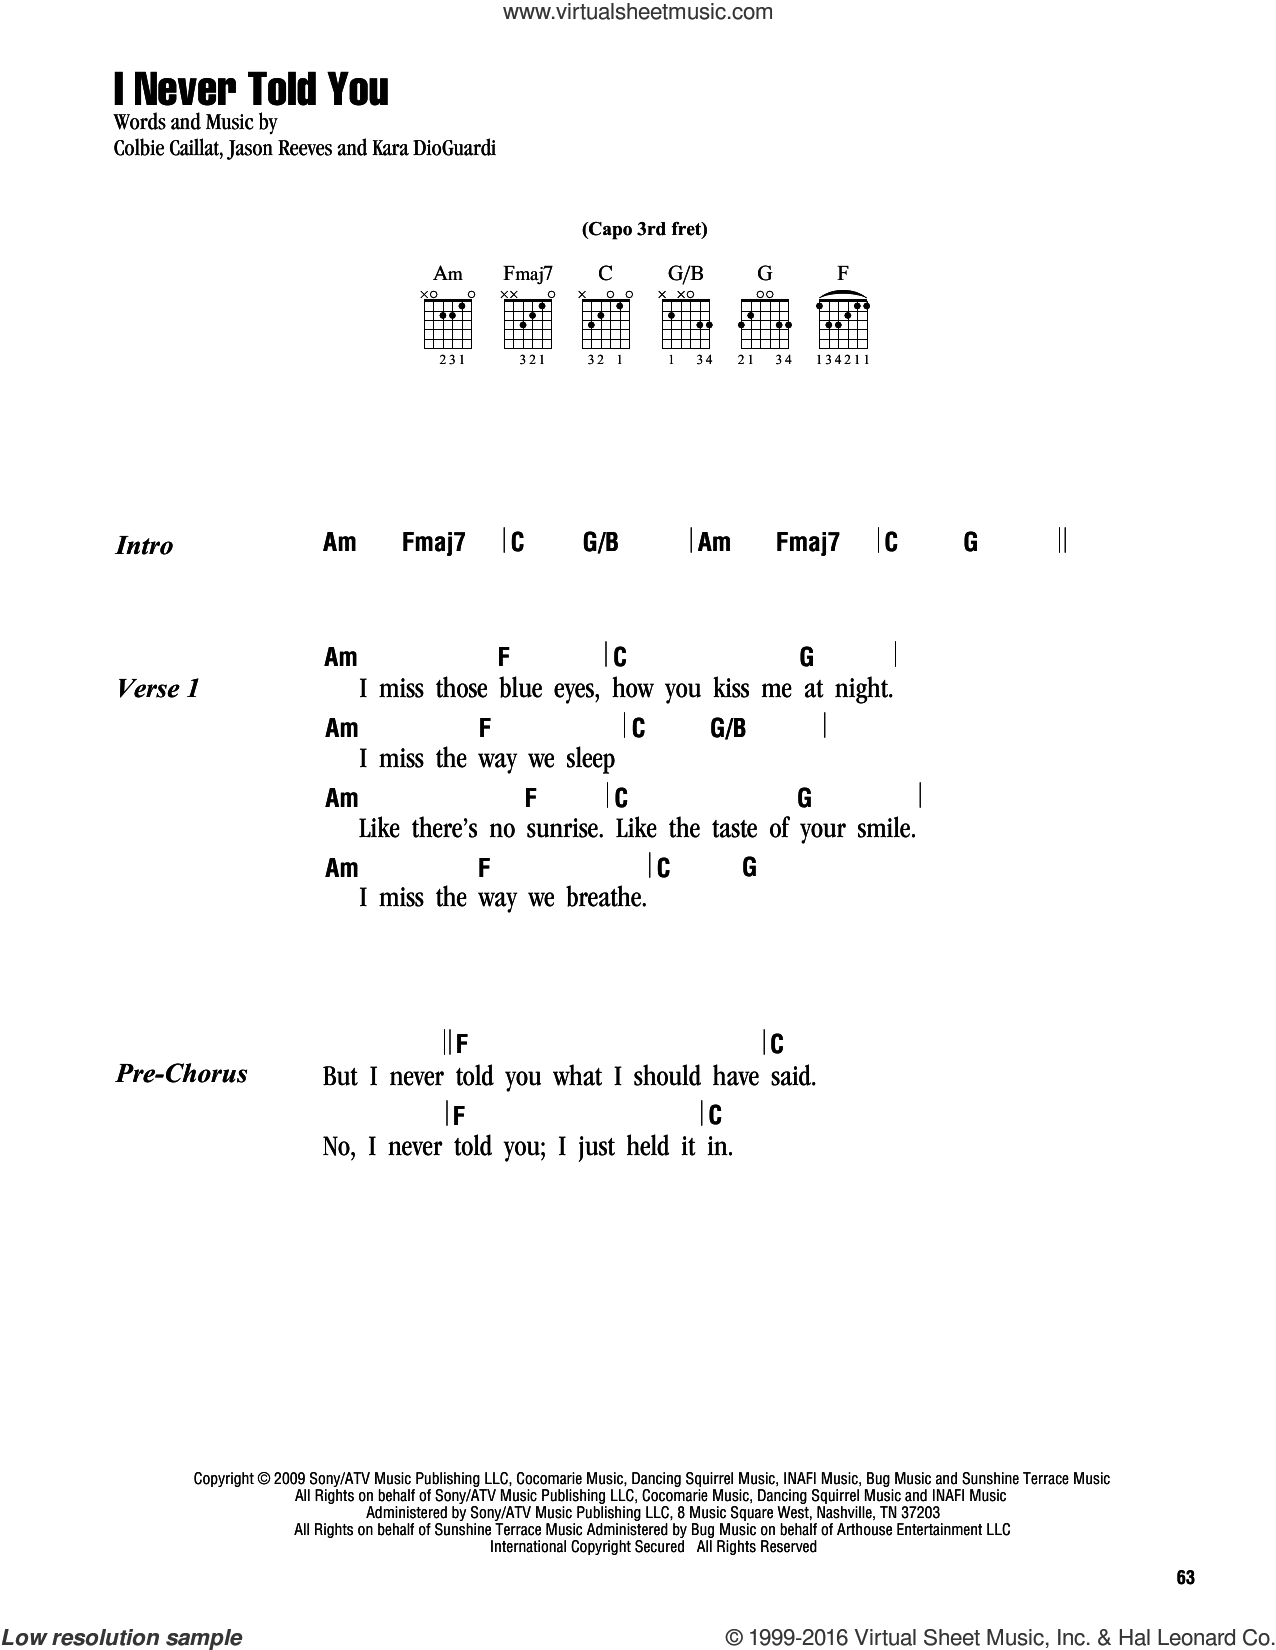 I Never Told You sheet music for guitar (chords) by Colbie Caillat, Jason Reeves and Kara DioGuardi, intermediate. Score Image Preview.